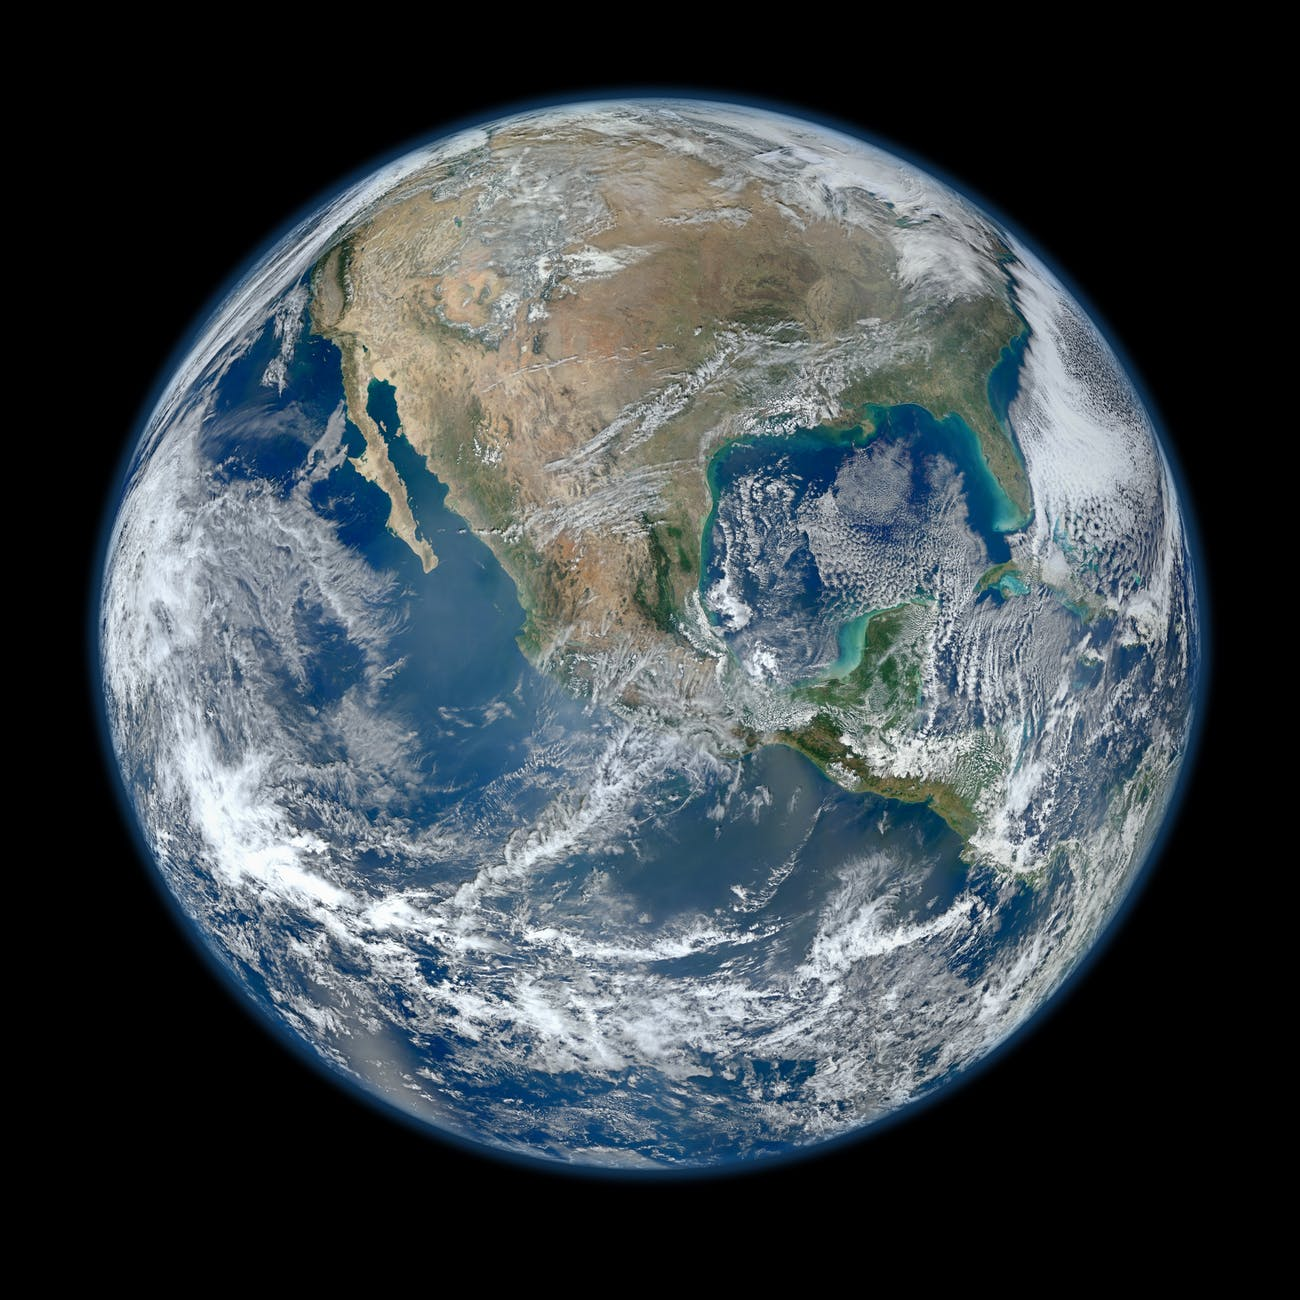 planet earth close up photo